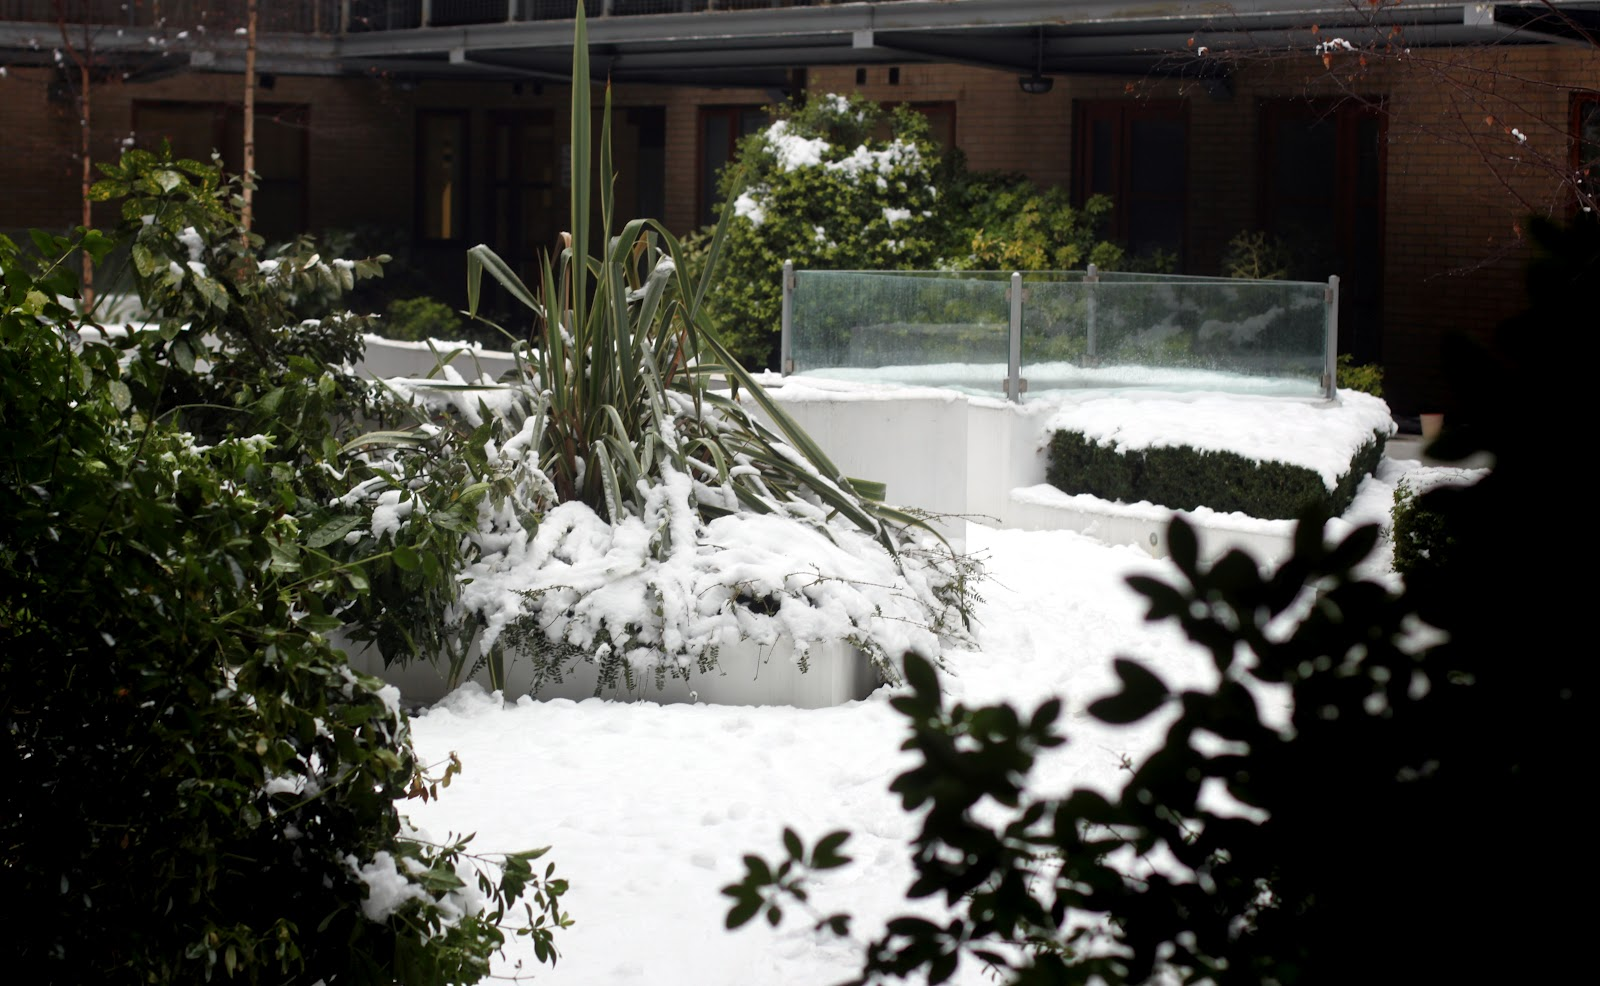 Noko building and garden in the snow